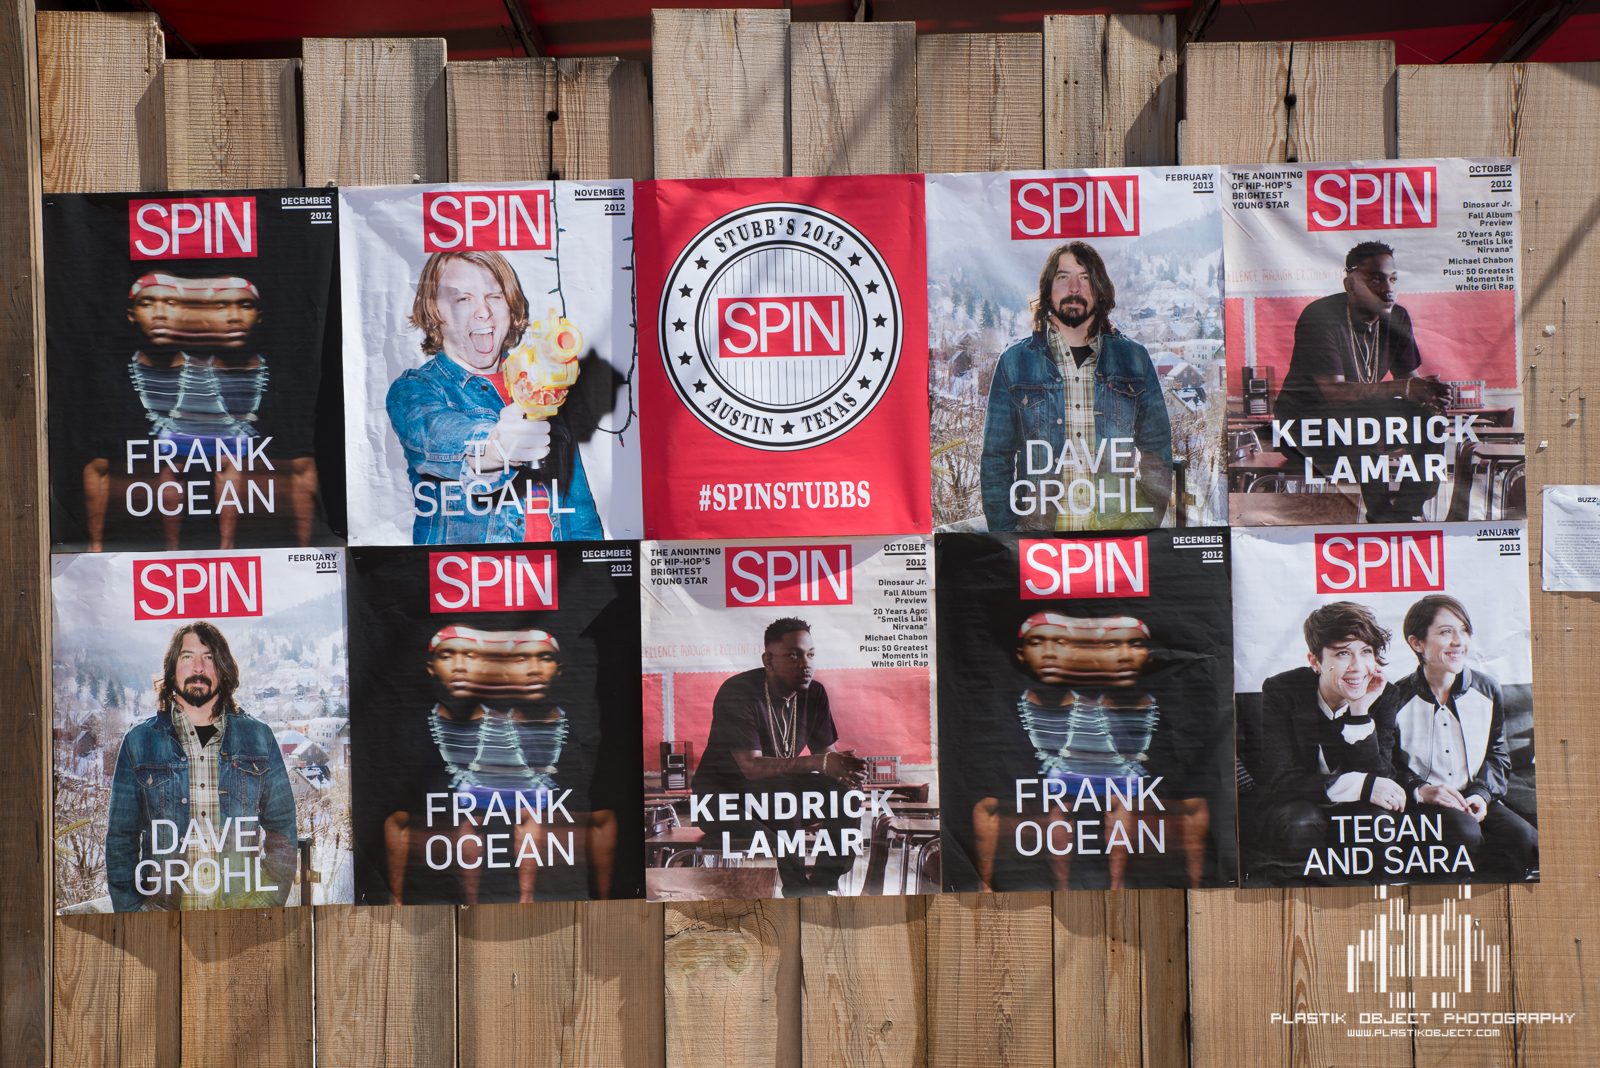 Spin took over Stubb's Bar-B-Que for their showcases